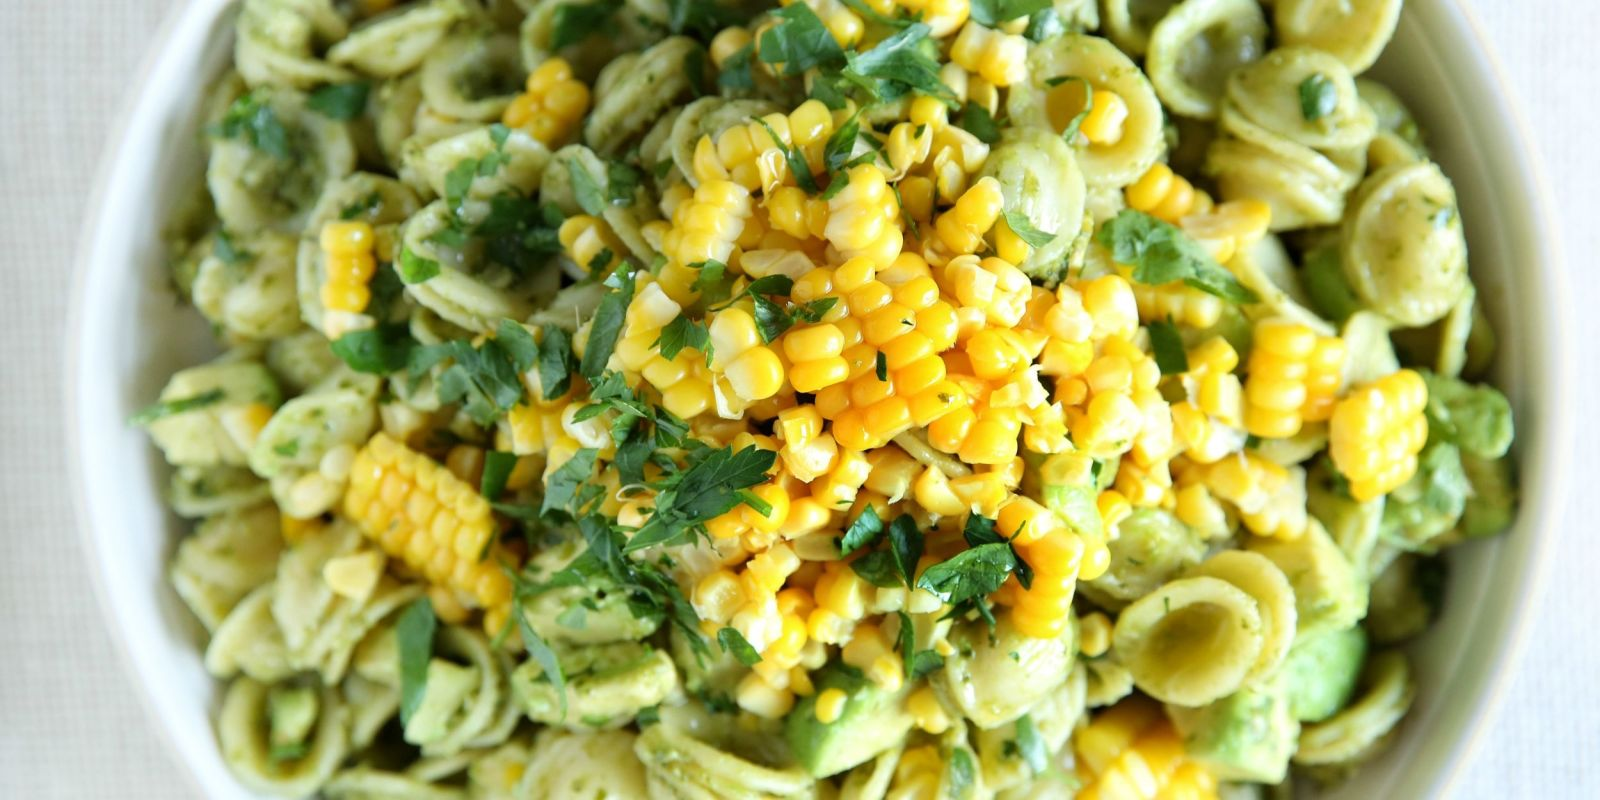 Refreshing pasta salad recipes